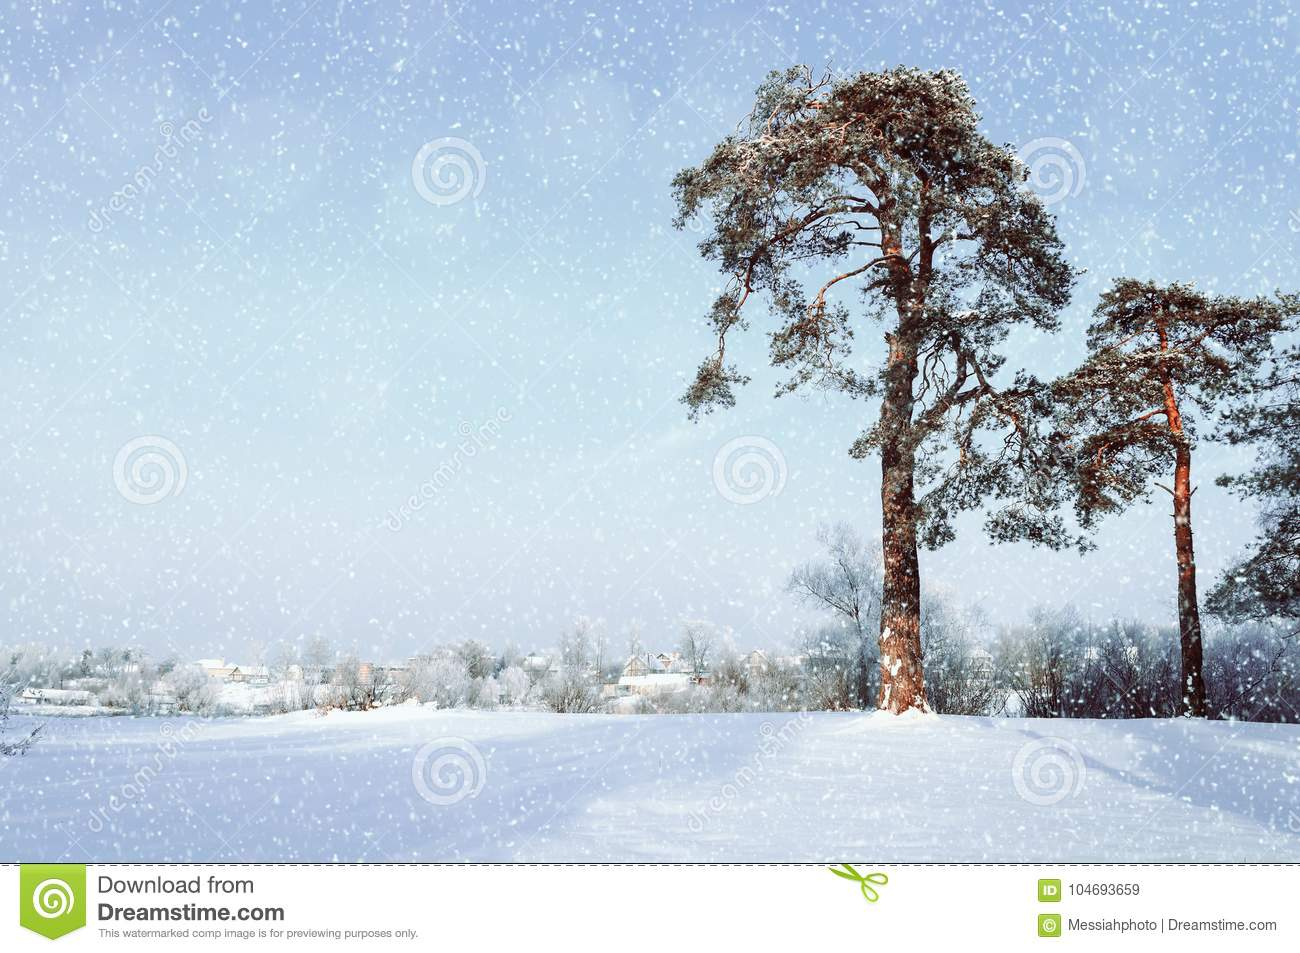 Winter landscape. Frosty pine trees in the winter forest and village on the background